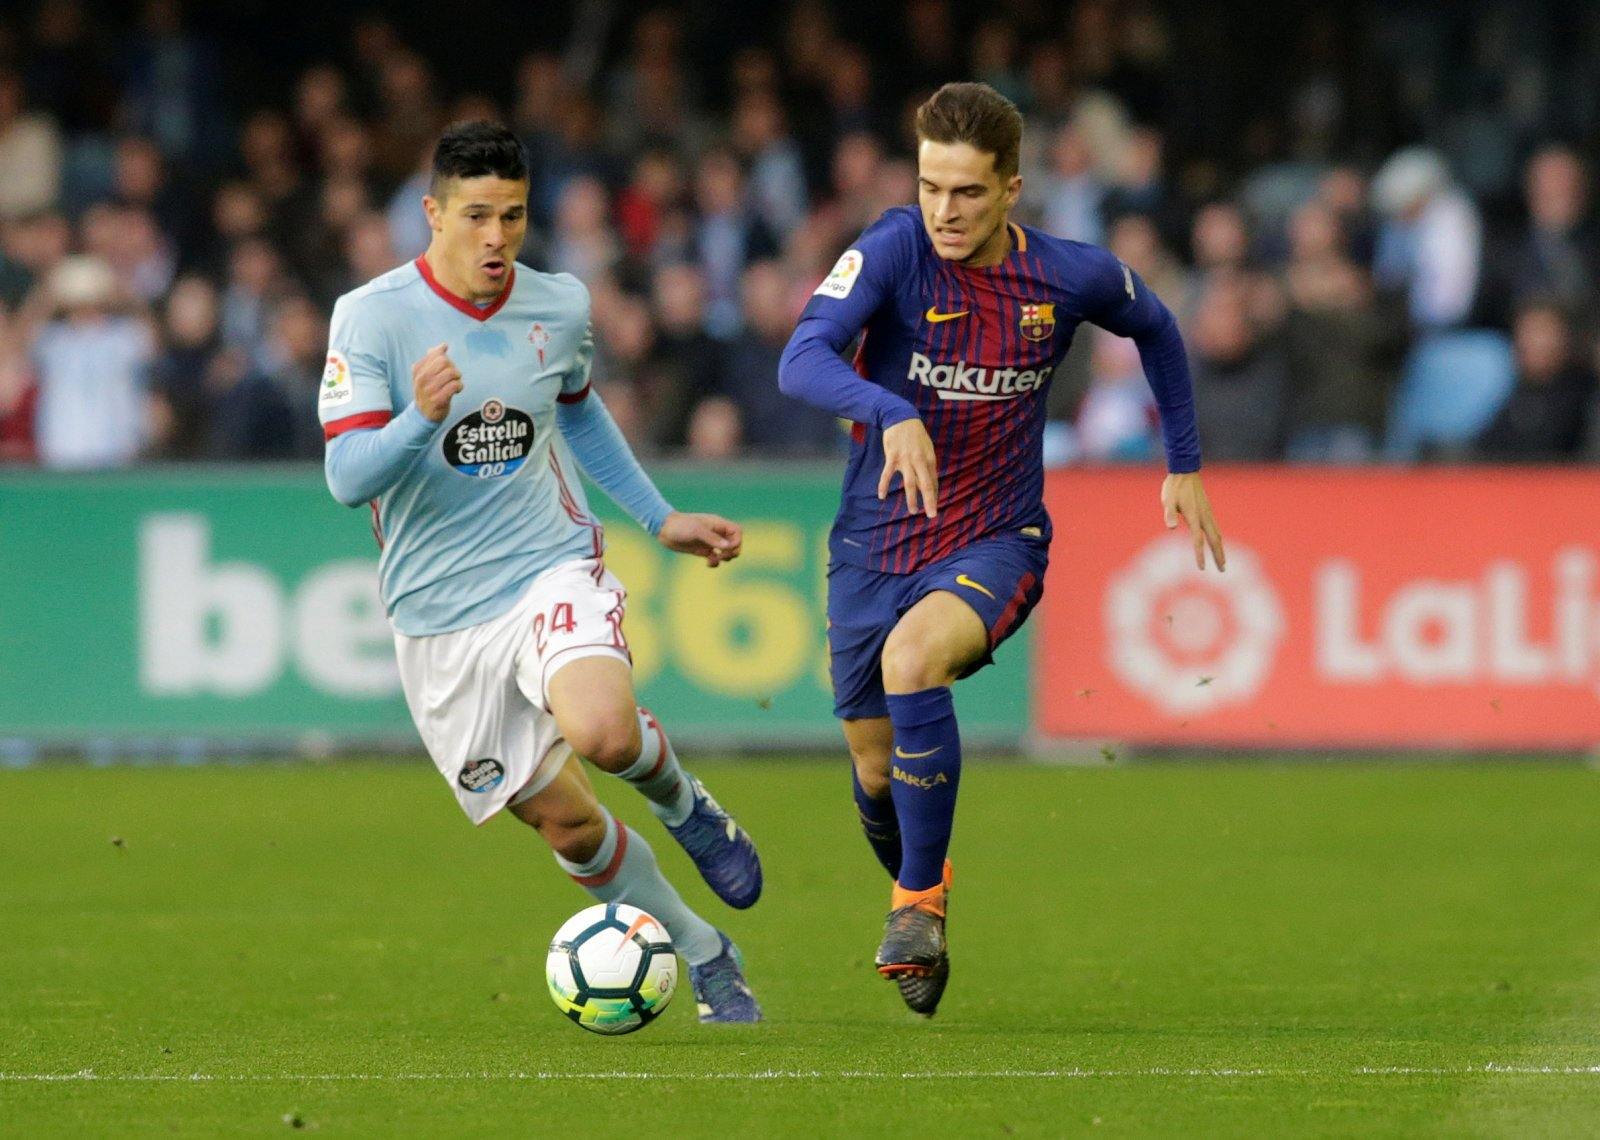 Opinion: Marcel Brands could secure a bargain deal for Denis Suarez in yet another Barcelona raid